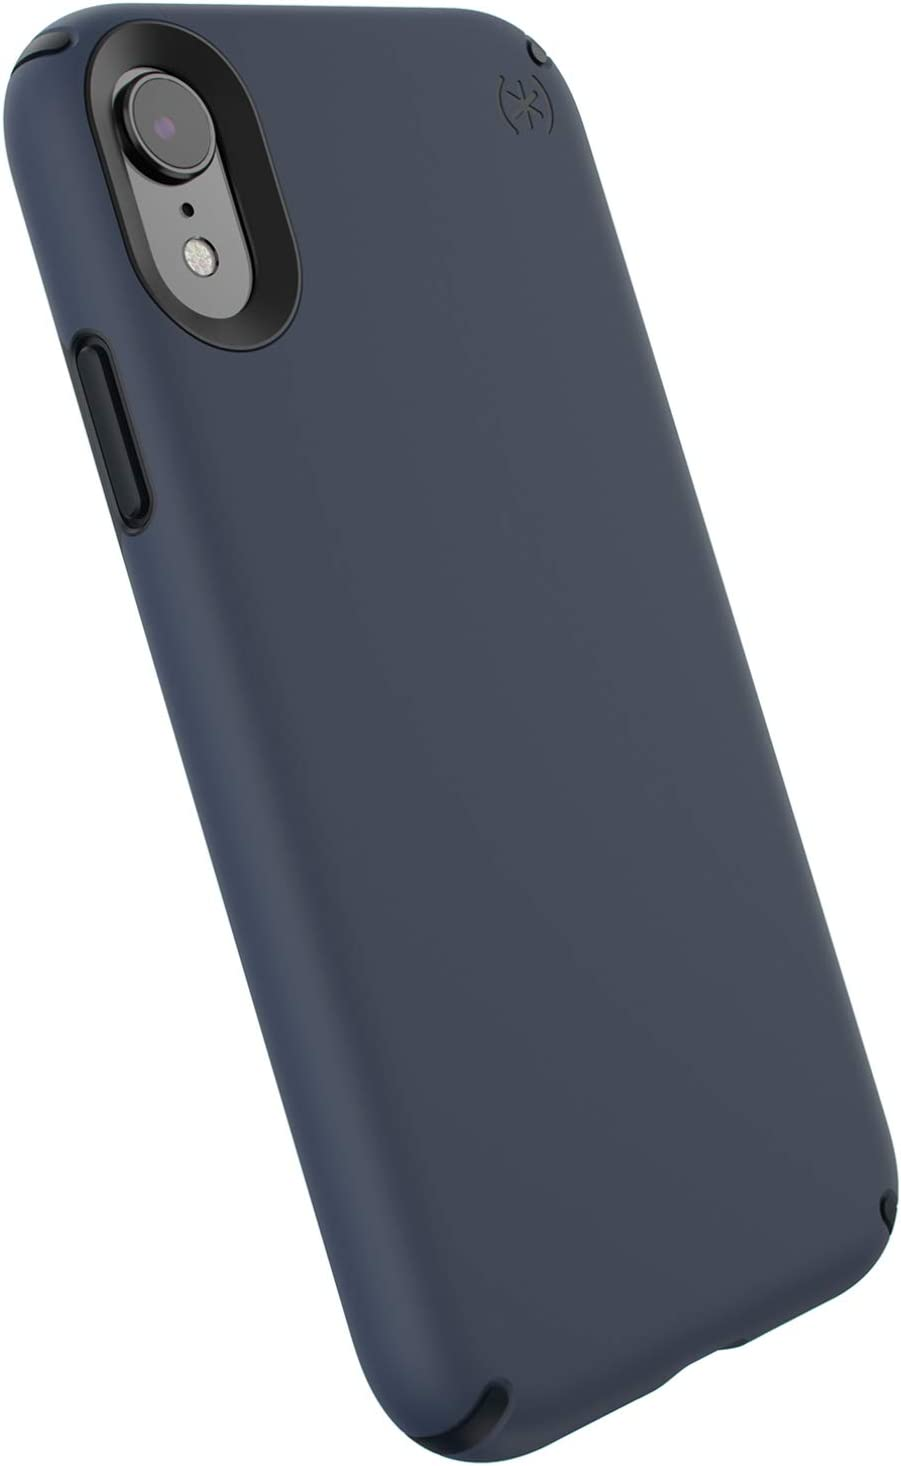 Speck Products Presidio Pro iPhone XR Case, Eclipse Blue/Carbon Black